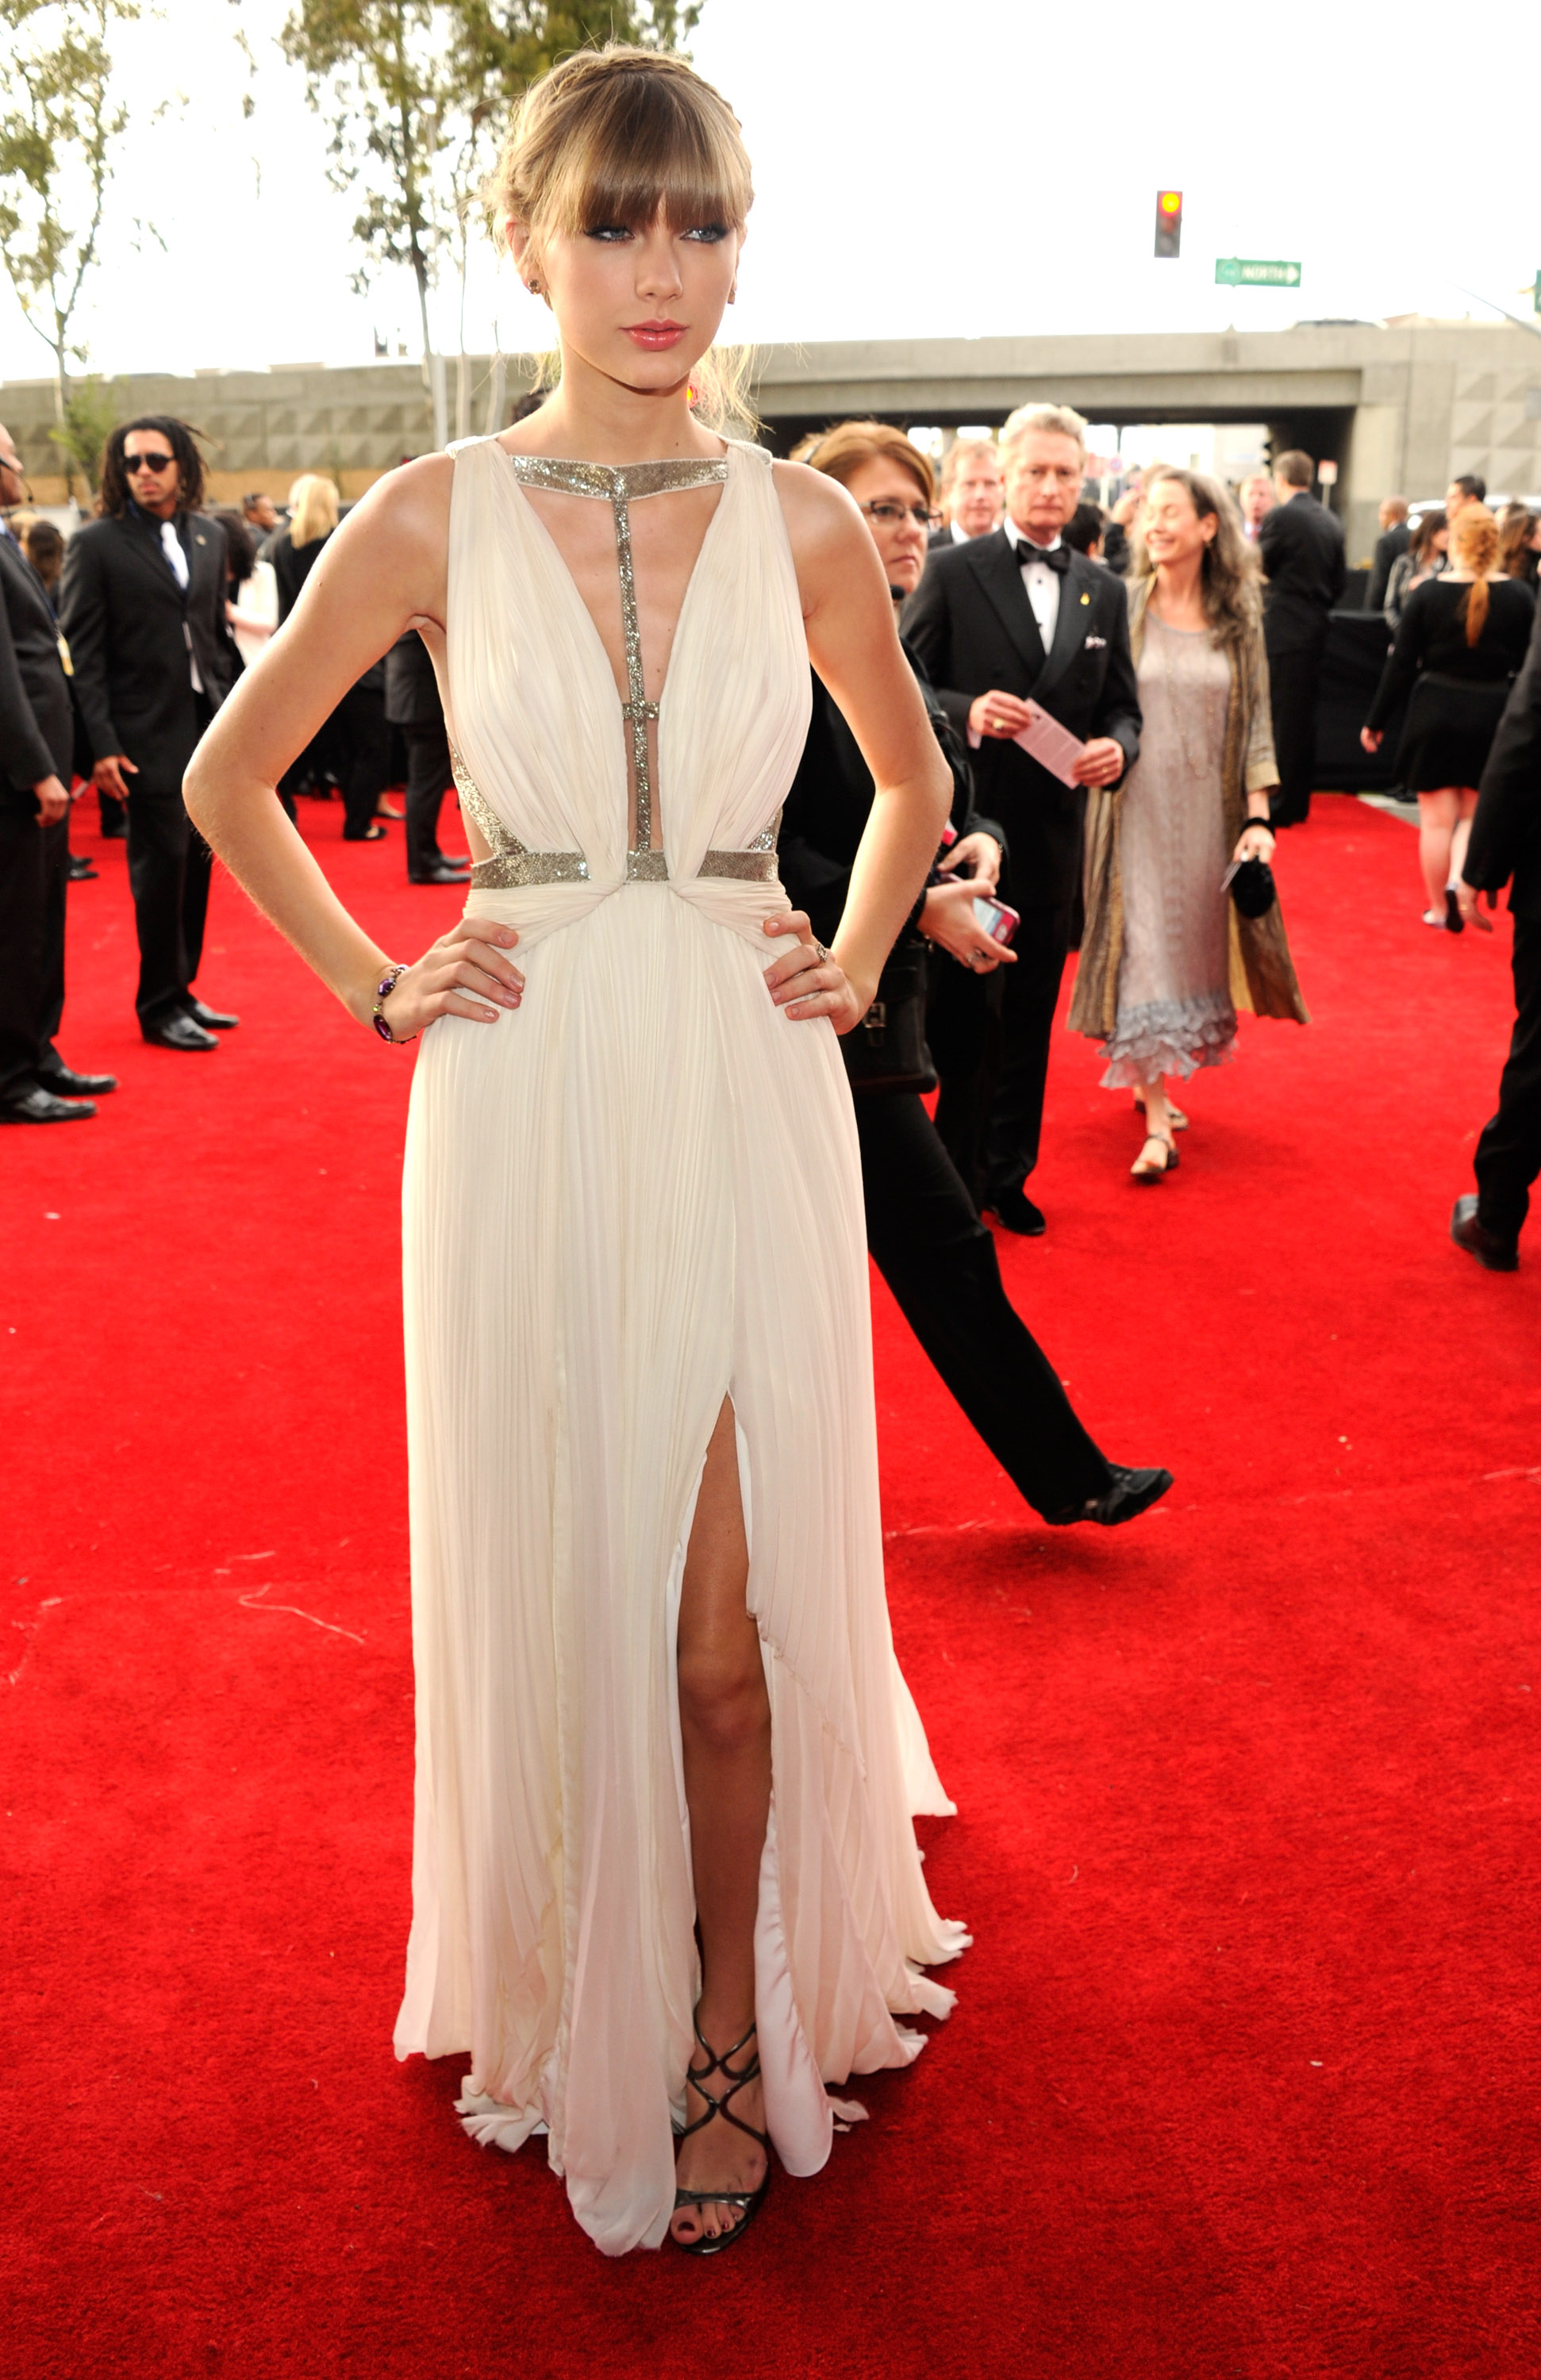 Grammy Awards 2013 Taylor Swift S Troubling Red Carpet